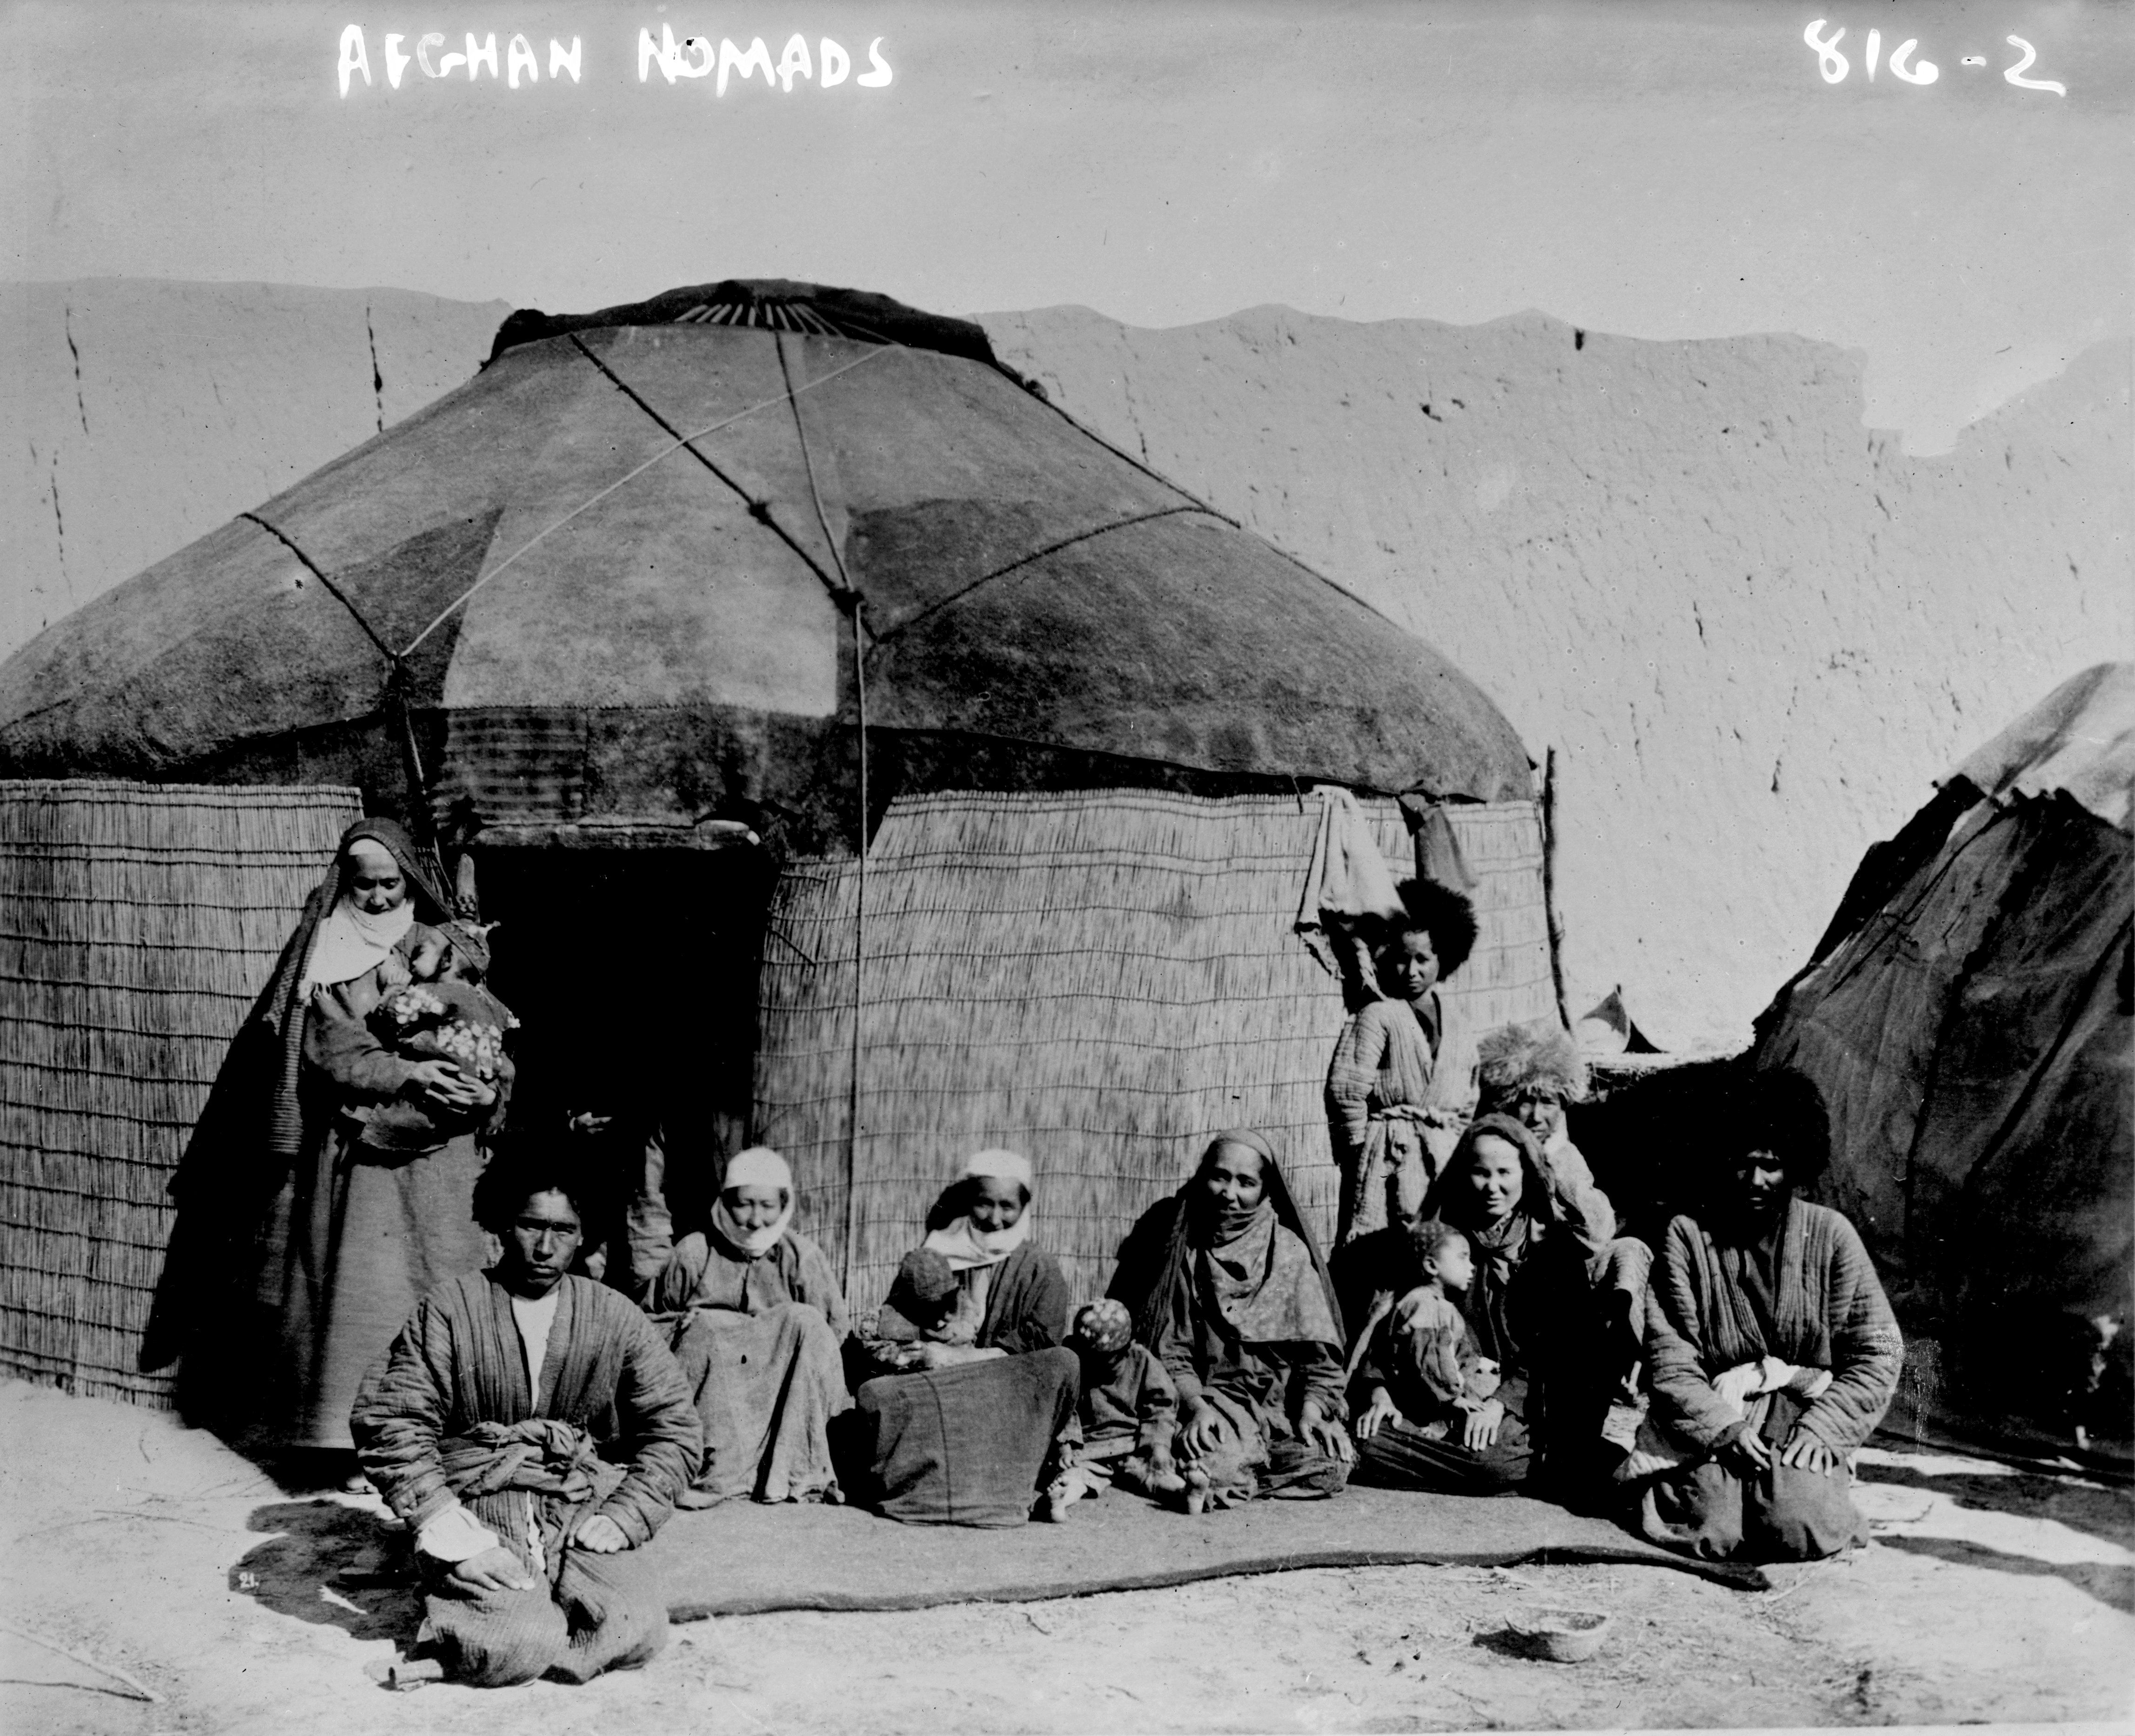 File:Afghan Nomads from the early 20th century.jpg - Wikipedia